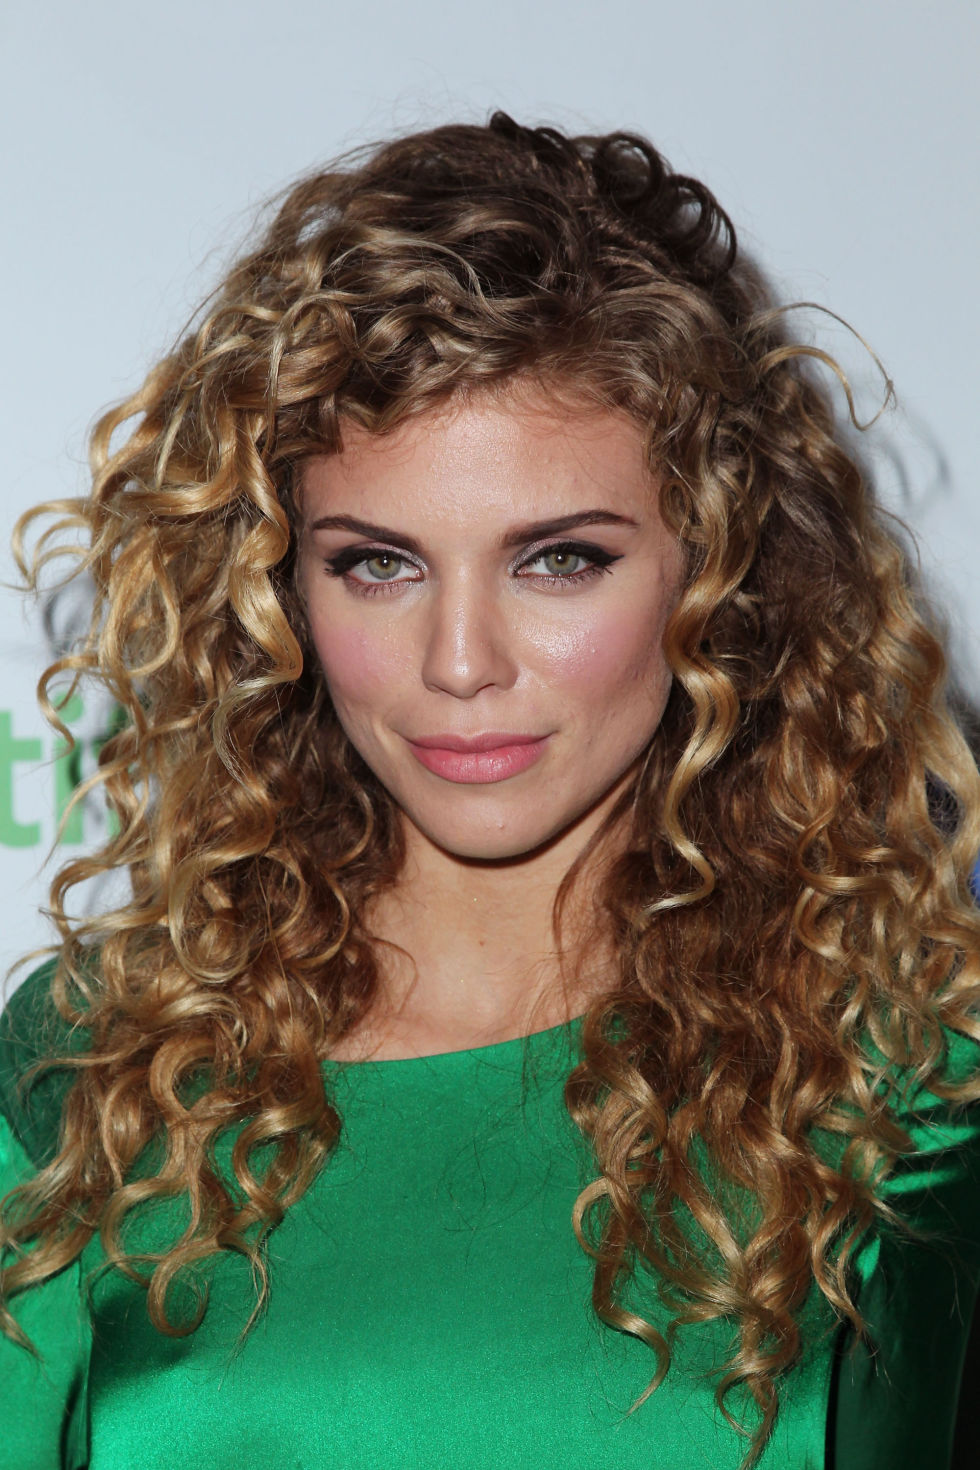 Marvelous 30 Best Curly Hairstyles Of 2017 Cute Hairstyles For Curly Hair Short Hairstyles Gunalazisus